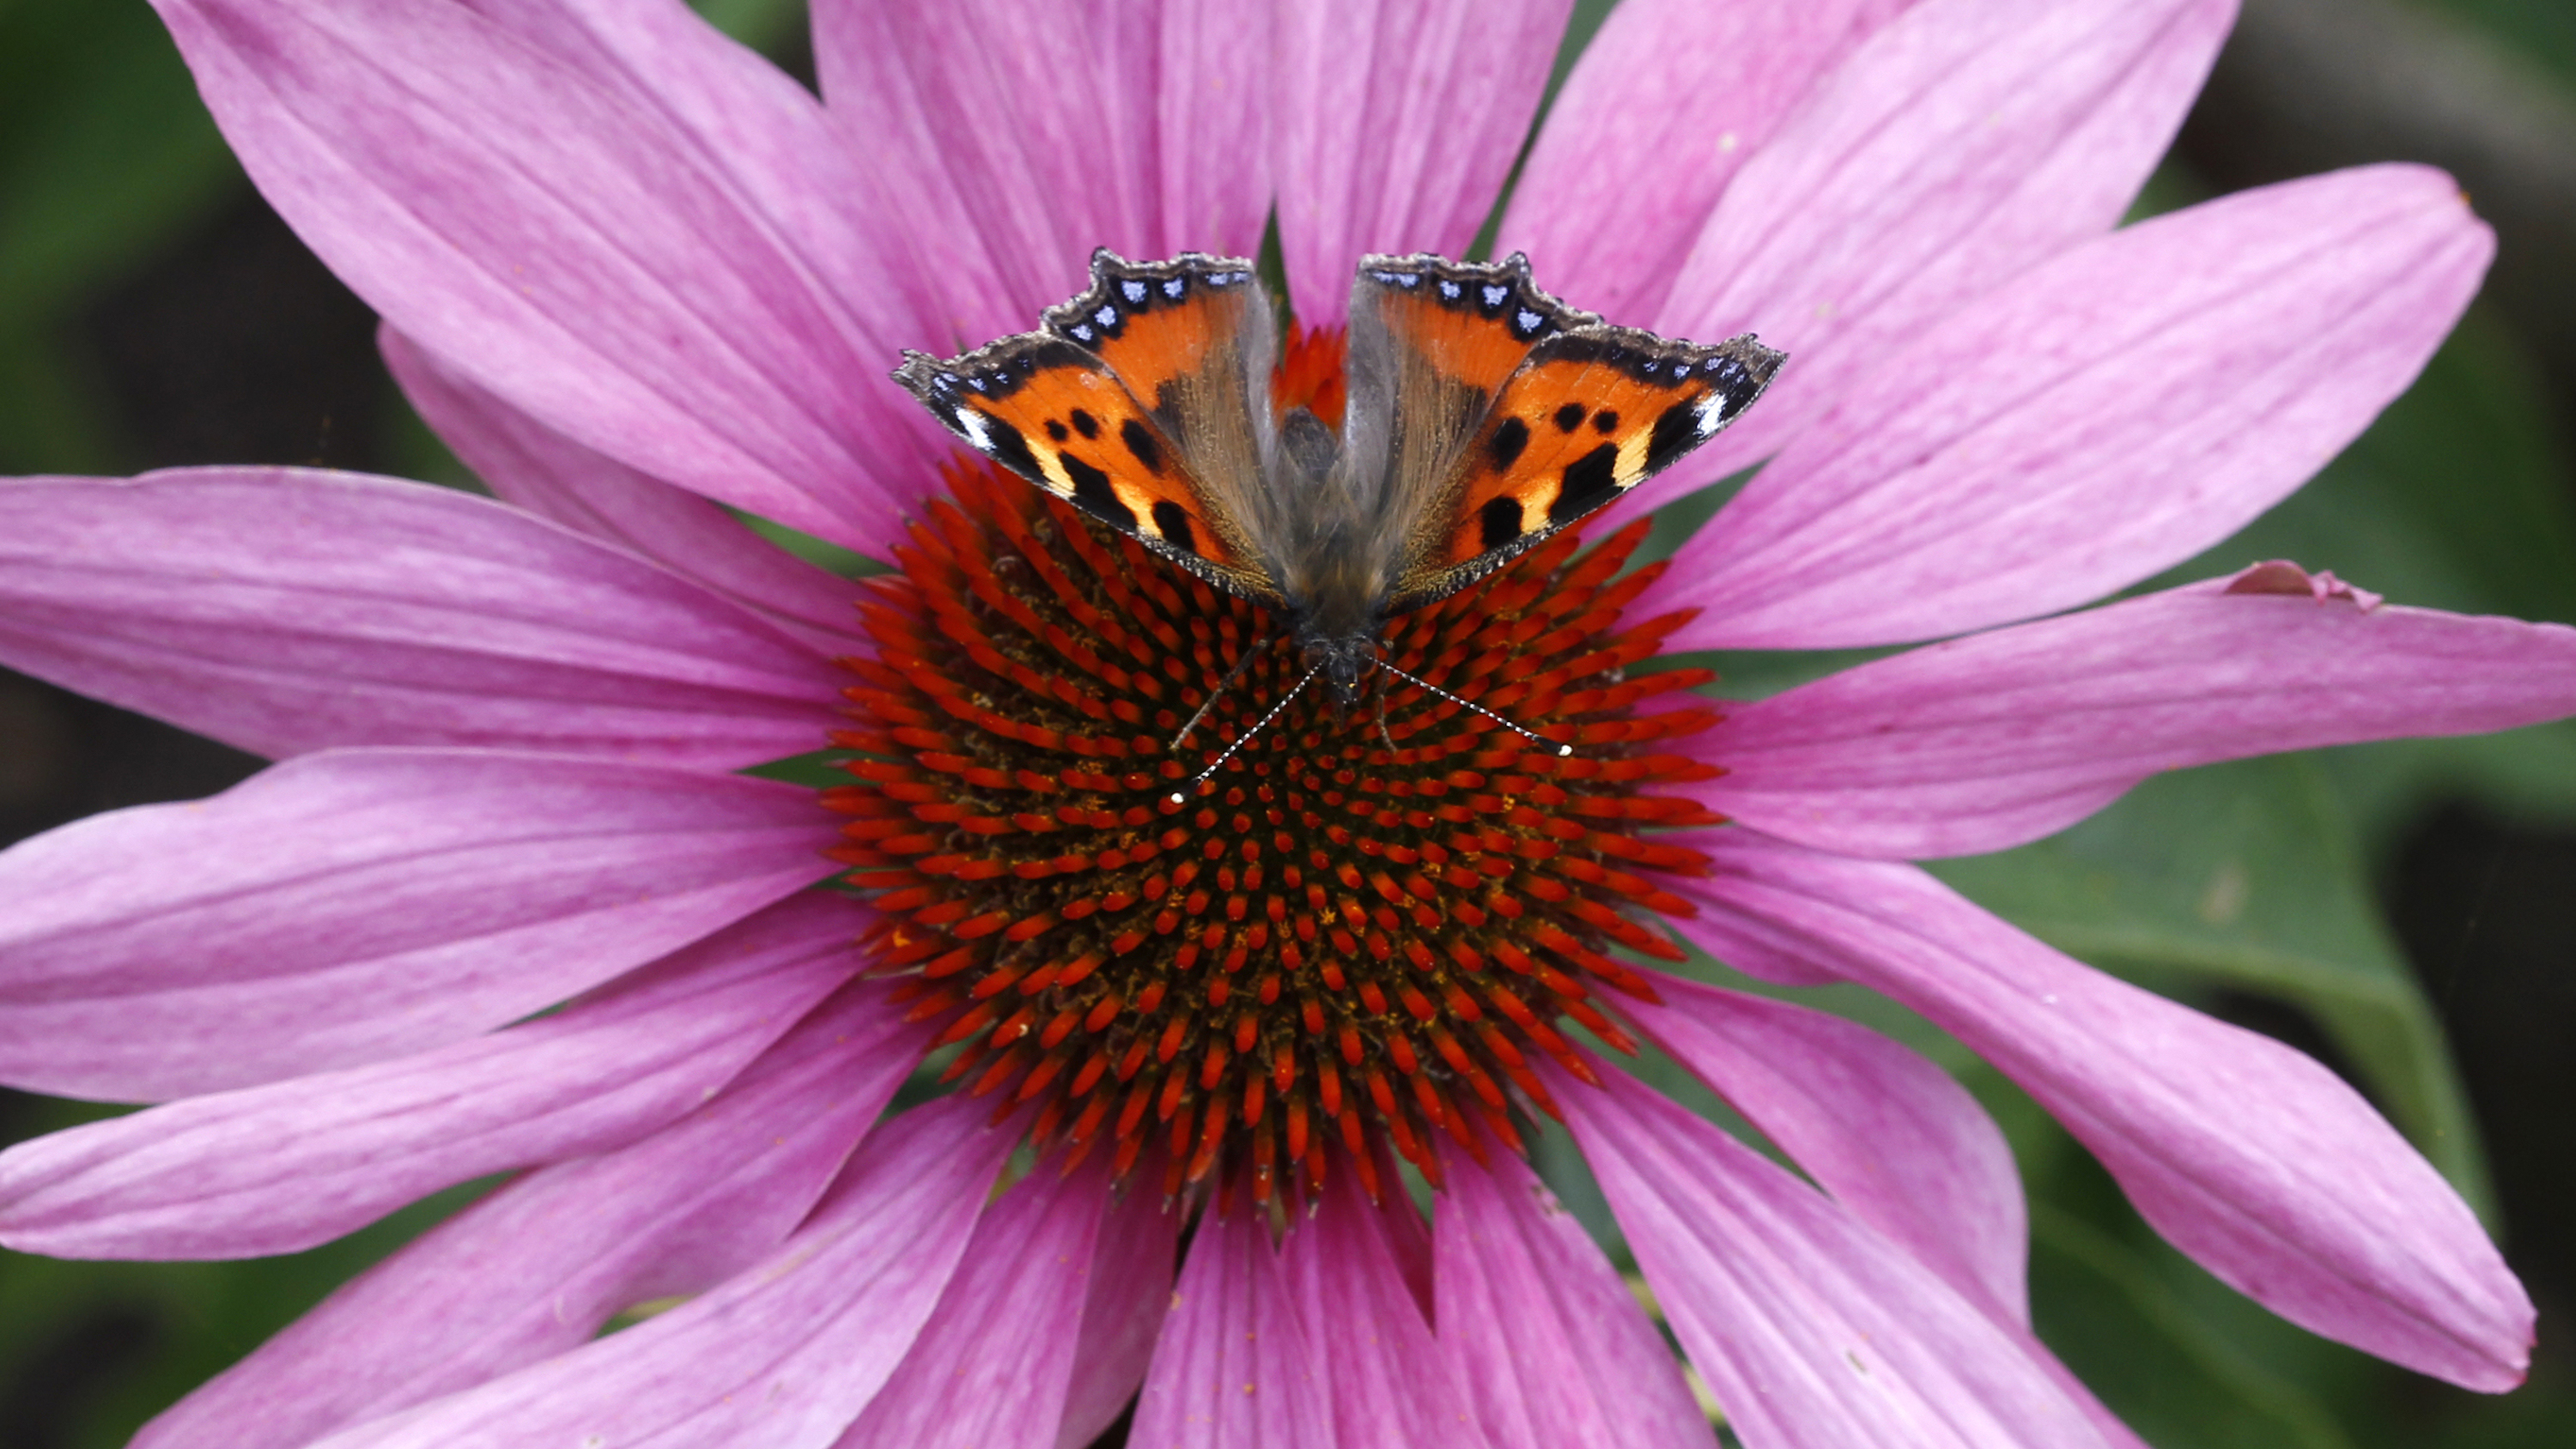 A butterfly called 'Kleiner Fuchs' little fox is pictured at a flower near Ingolstadt, southern Germany July 26, 2012.